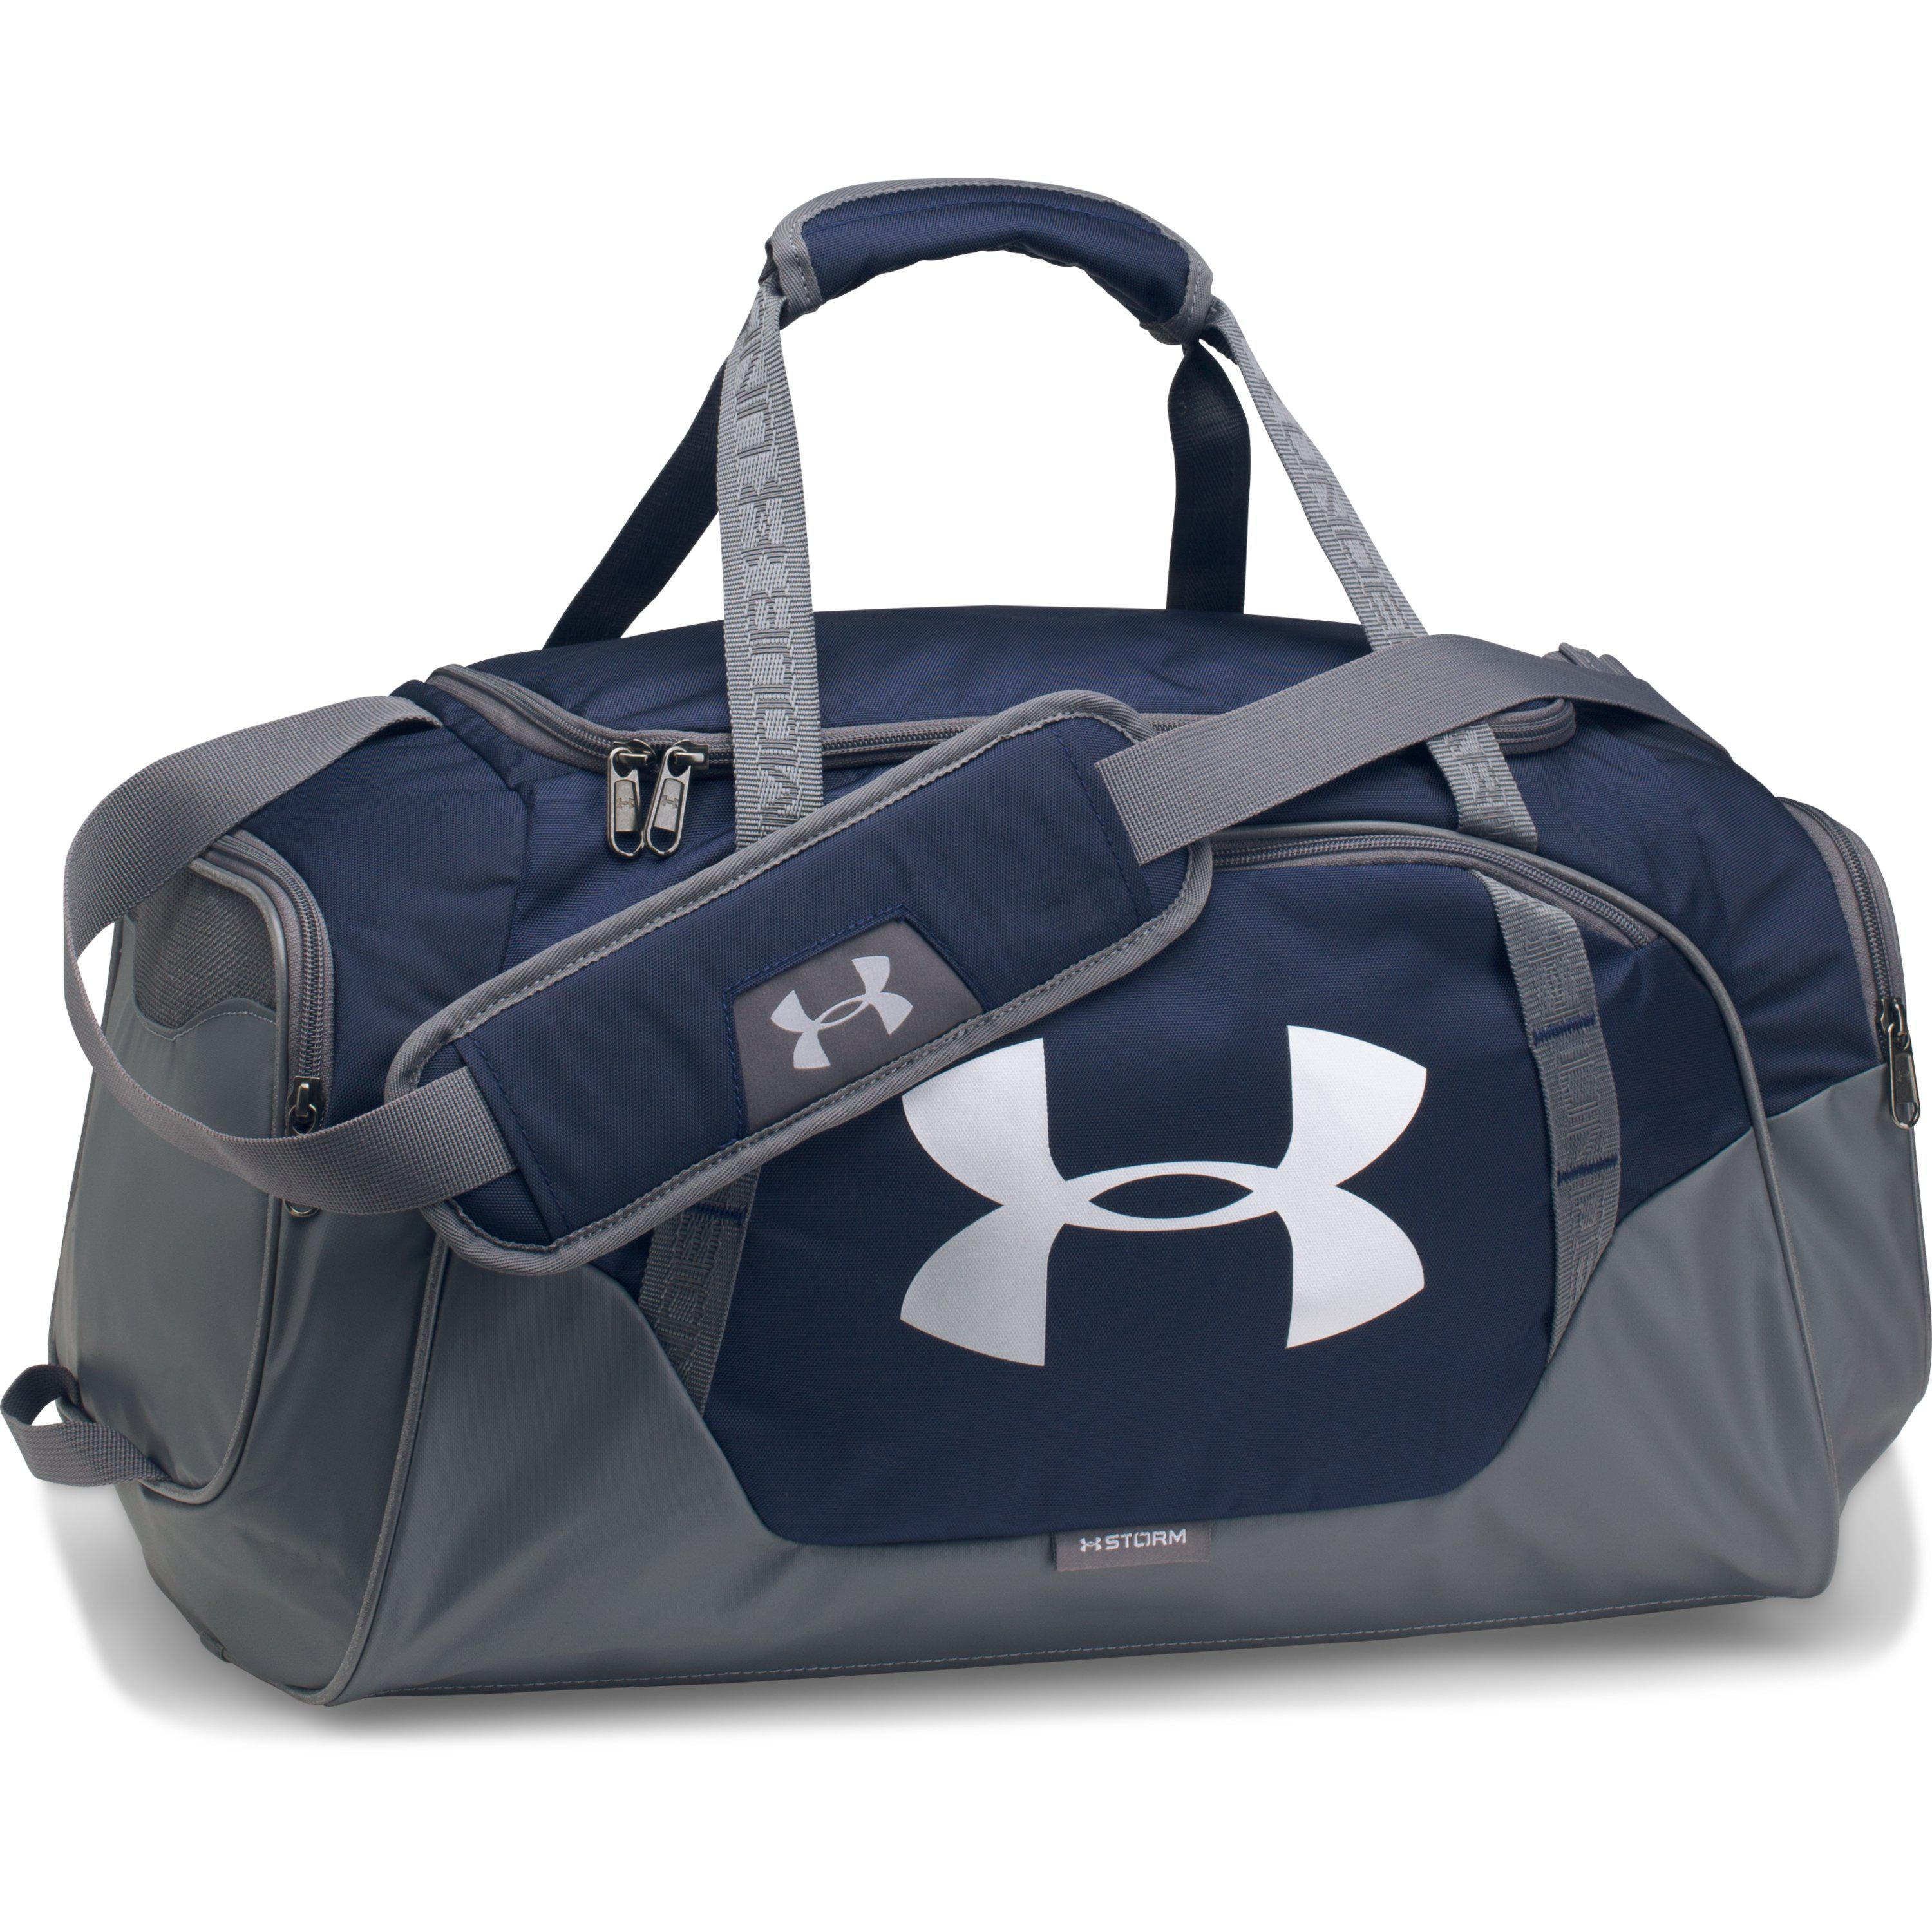 Lyst - Under Armour Men s Ua Undeniable 3.0 Small Duffle Bag in Blue ... 29091a292a856